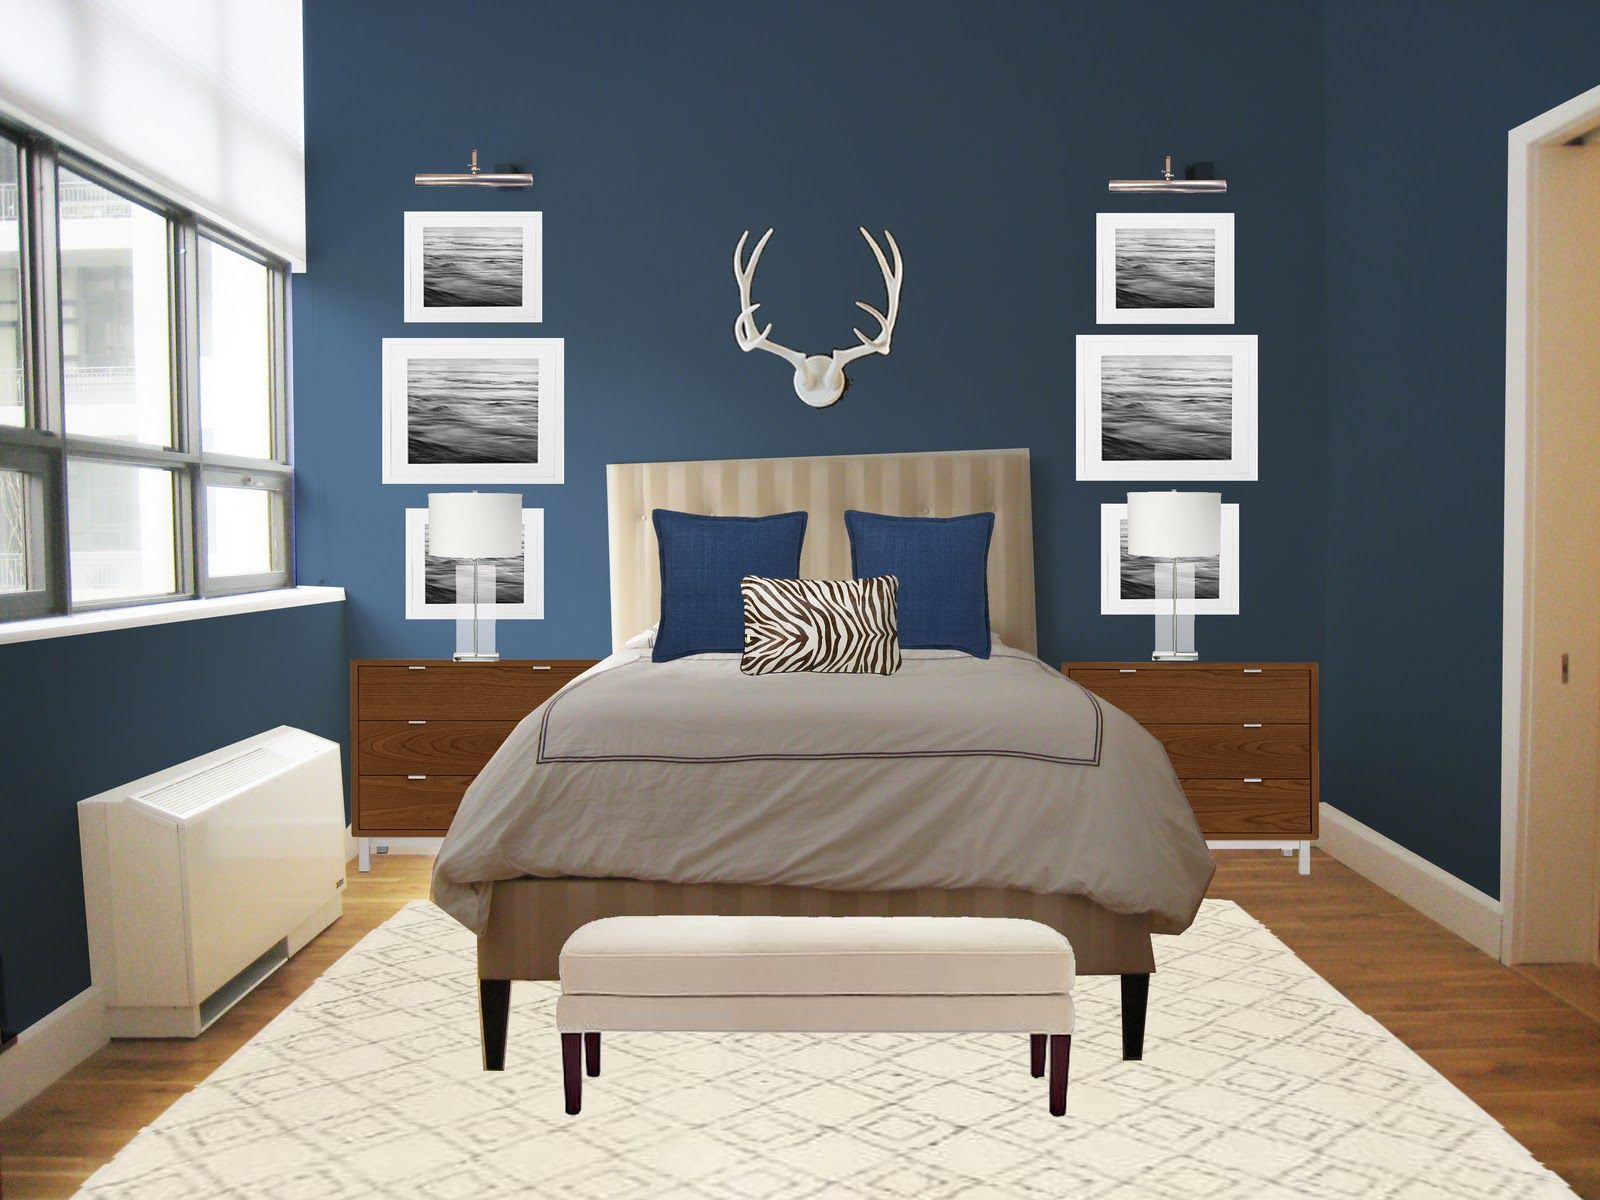 Modern bedroom paint designs - Behr Paint Ideas For Bedroom Bedroom Paint Colors 1600x1200 One Brooklyn Modern Paint Colors Chosen